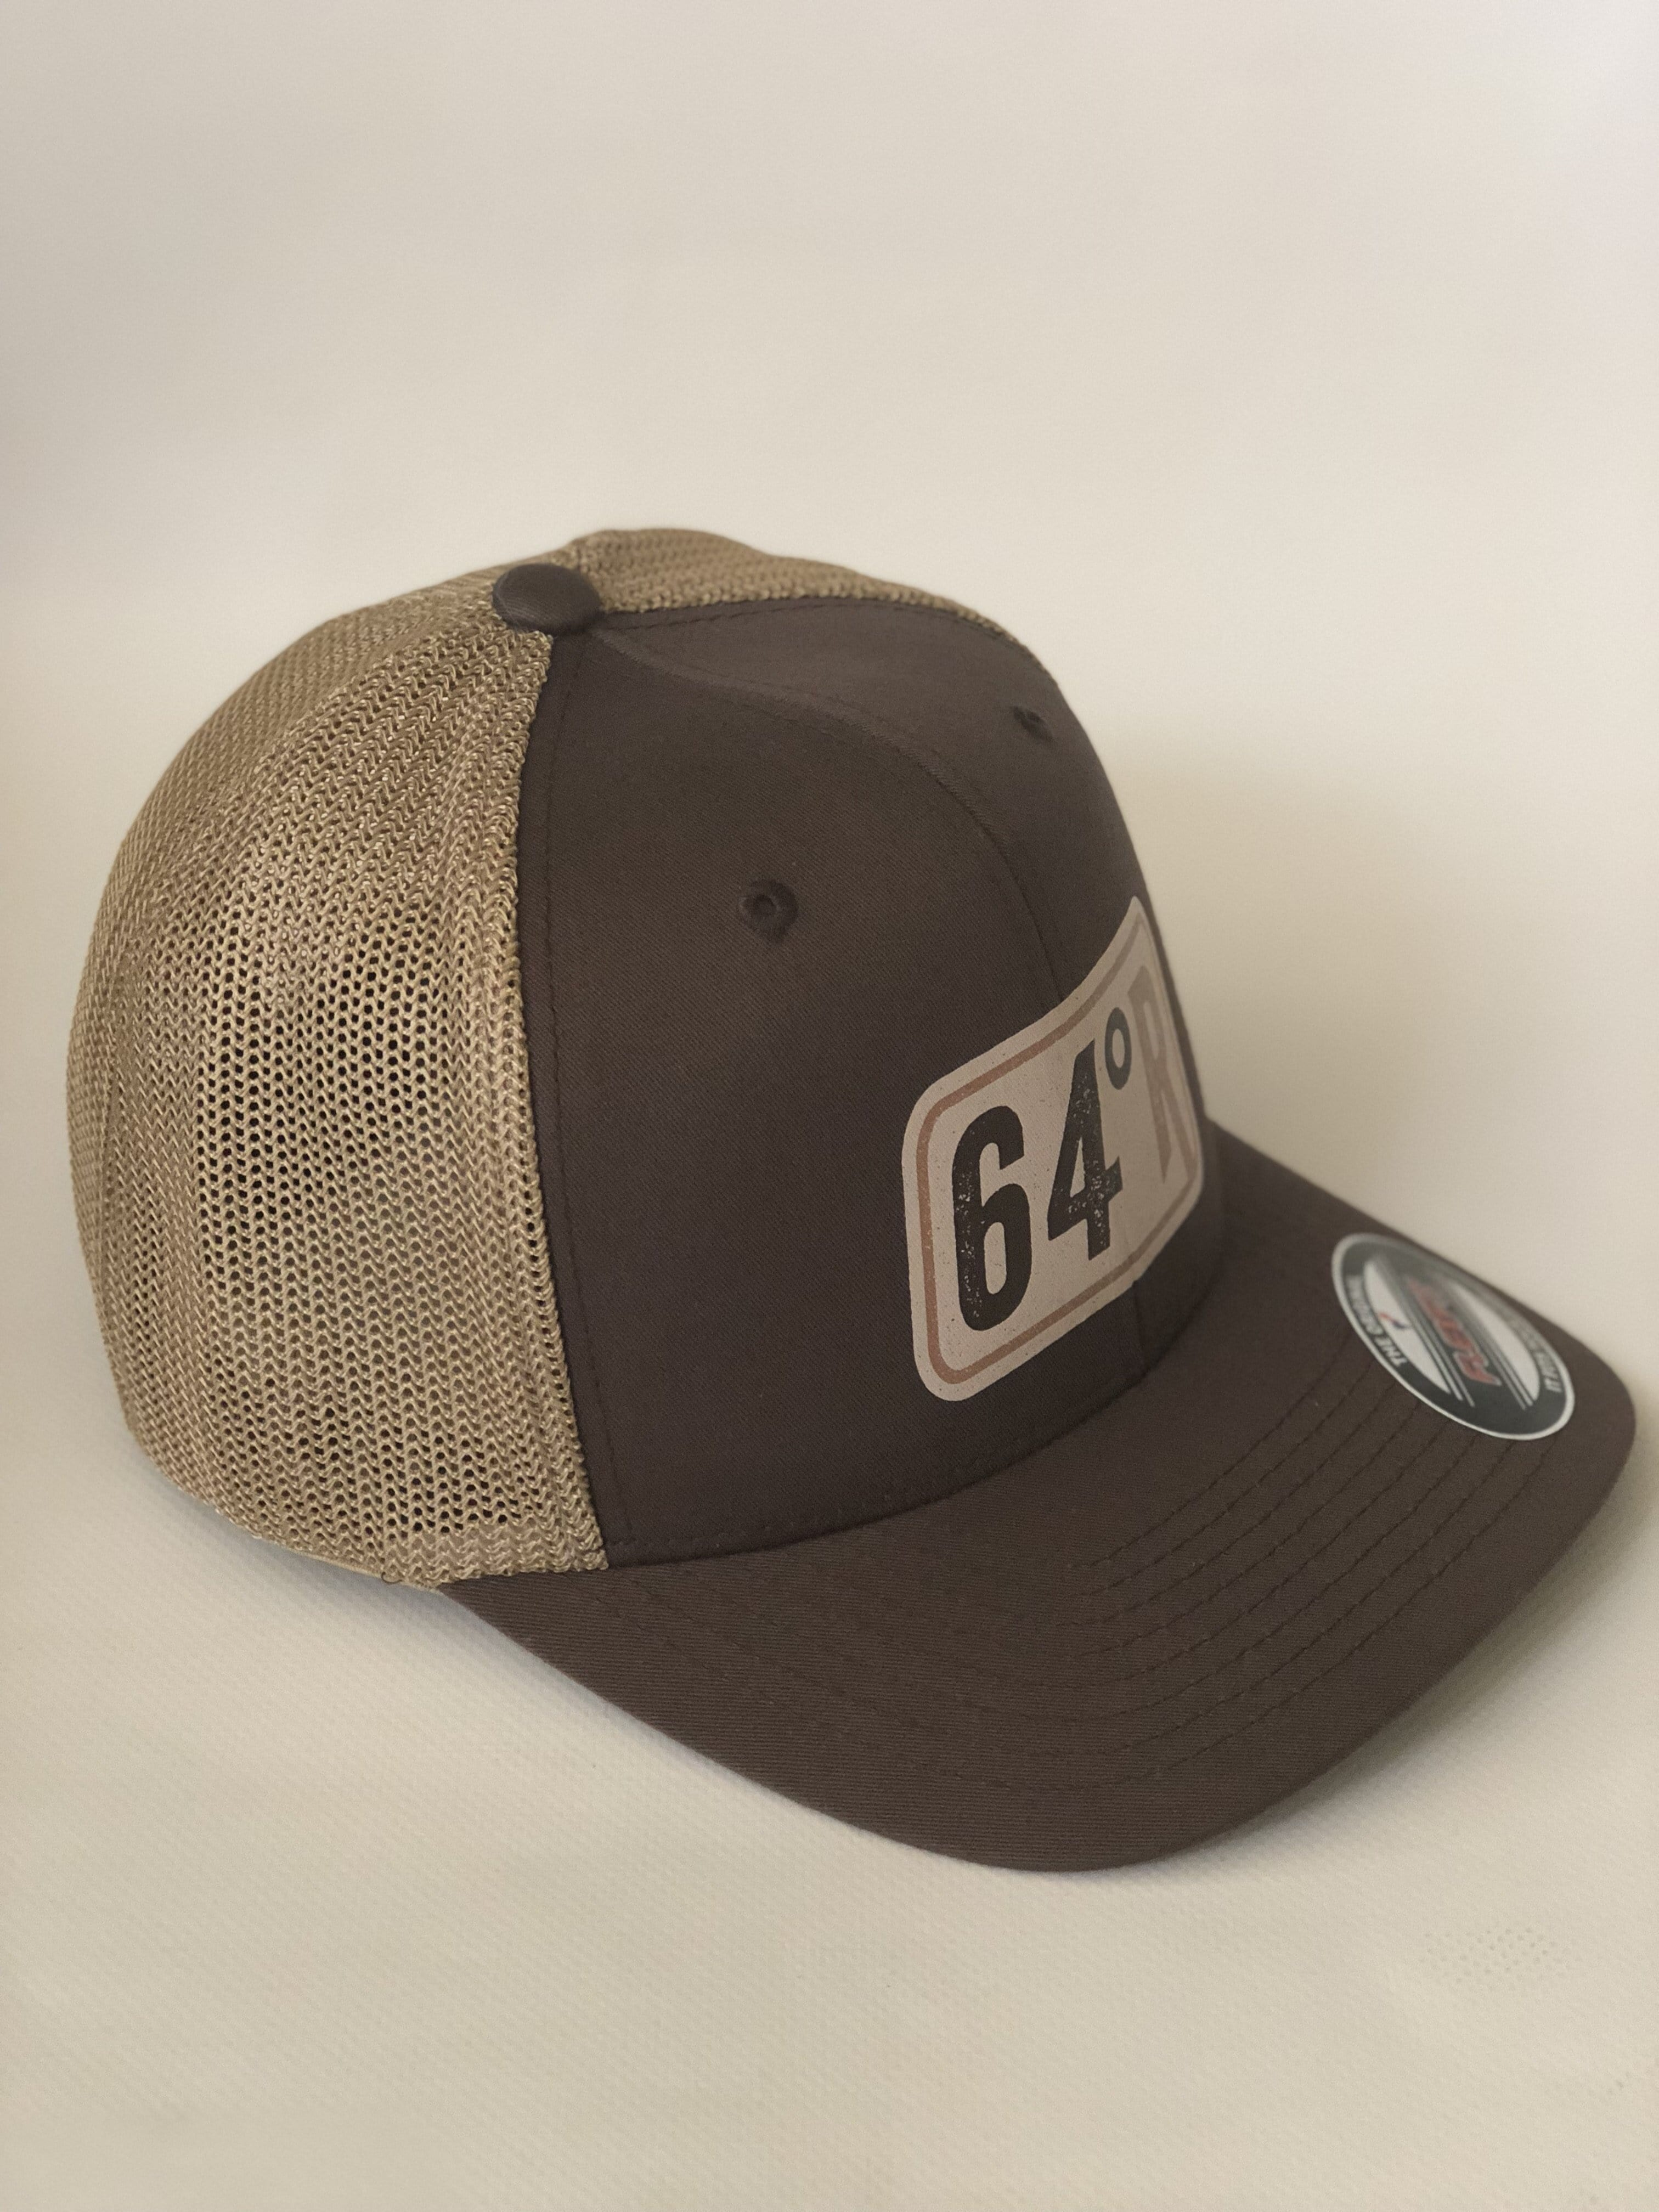 64 Degree Racing Retro One Size Logo trucker hat